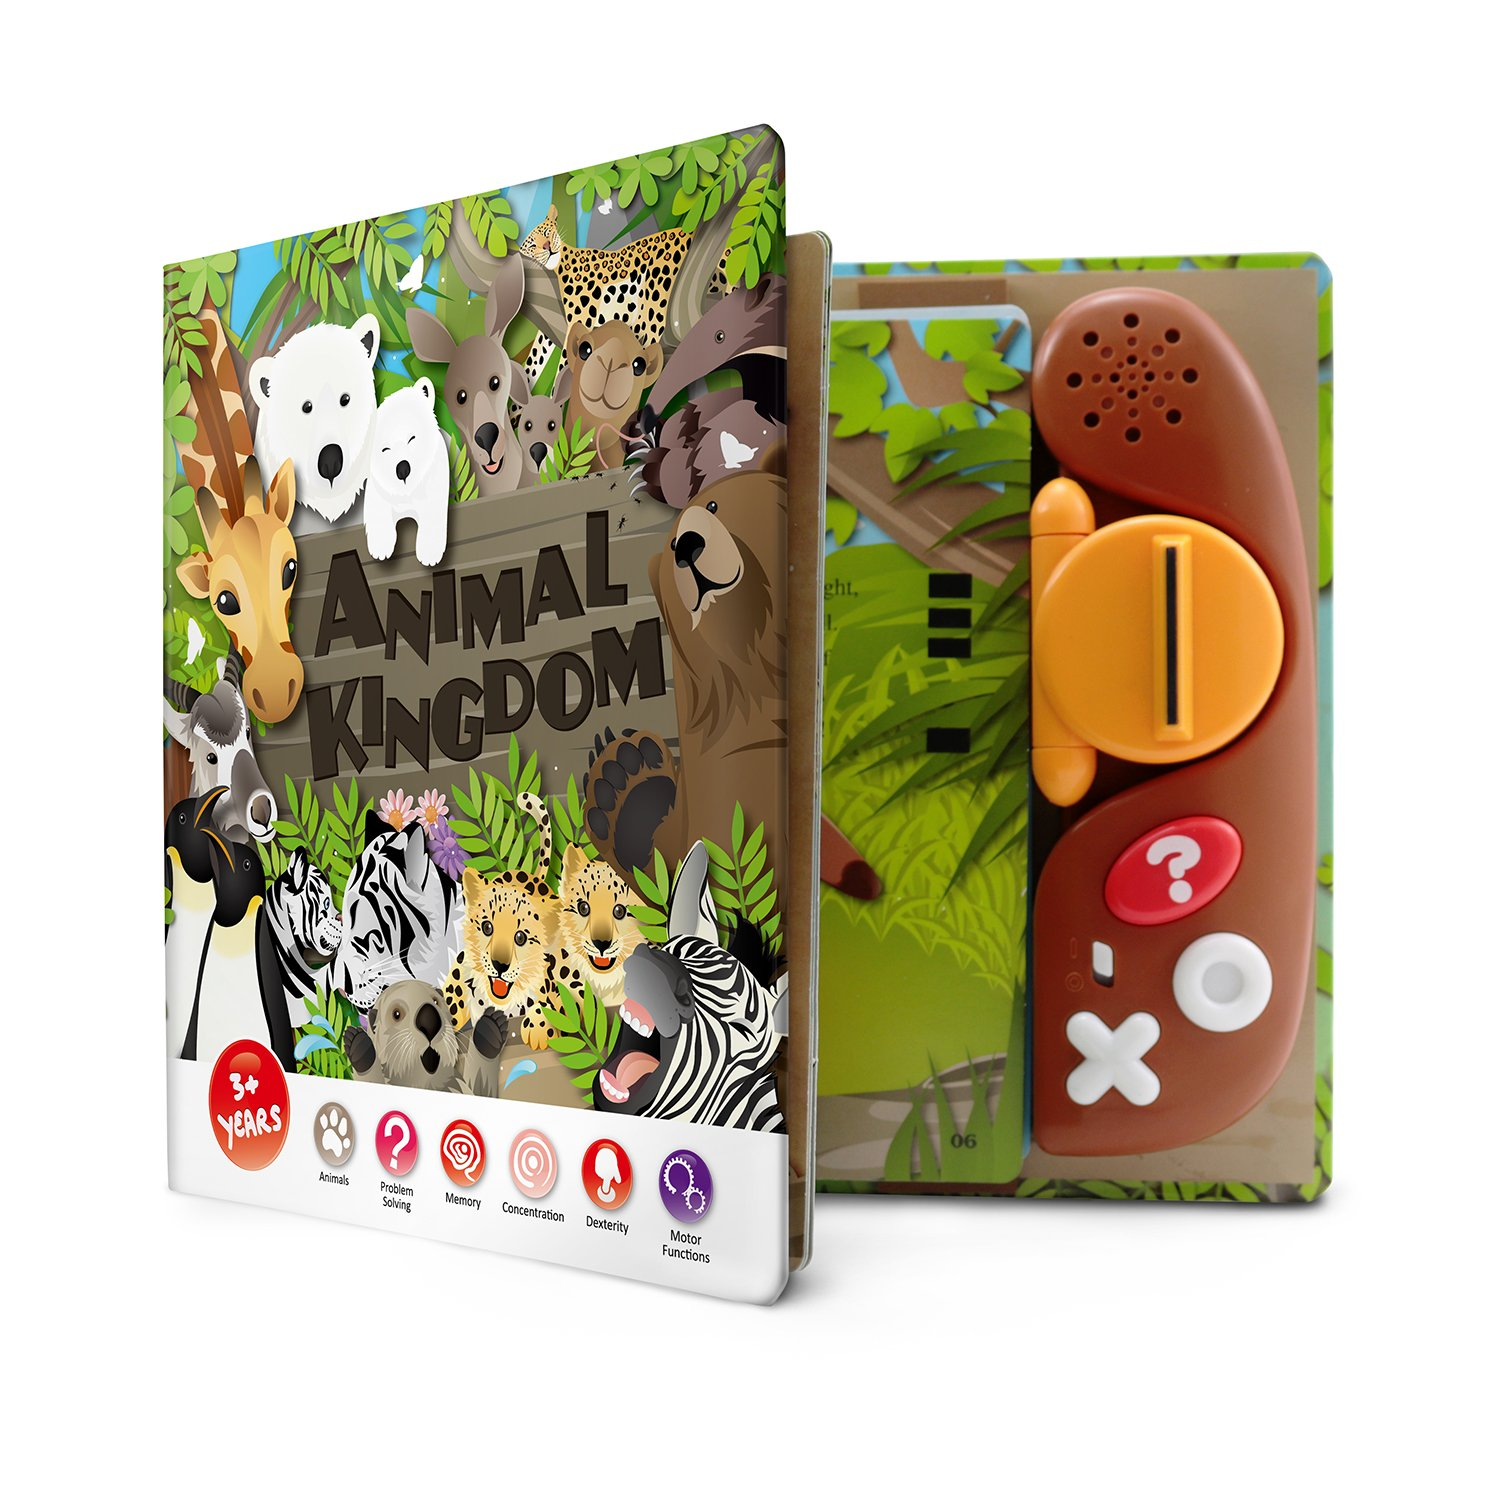 BEST LEARNING Book Reader Animal Kingdom - Educational Talking Sound Toy to Learn About Animals with Quiz Games for Kids Ages 3 to 8 Years Old by BEST LEARNING (Image #6)